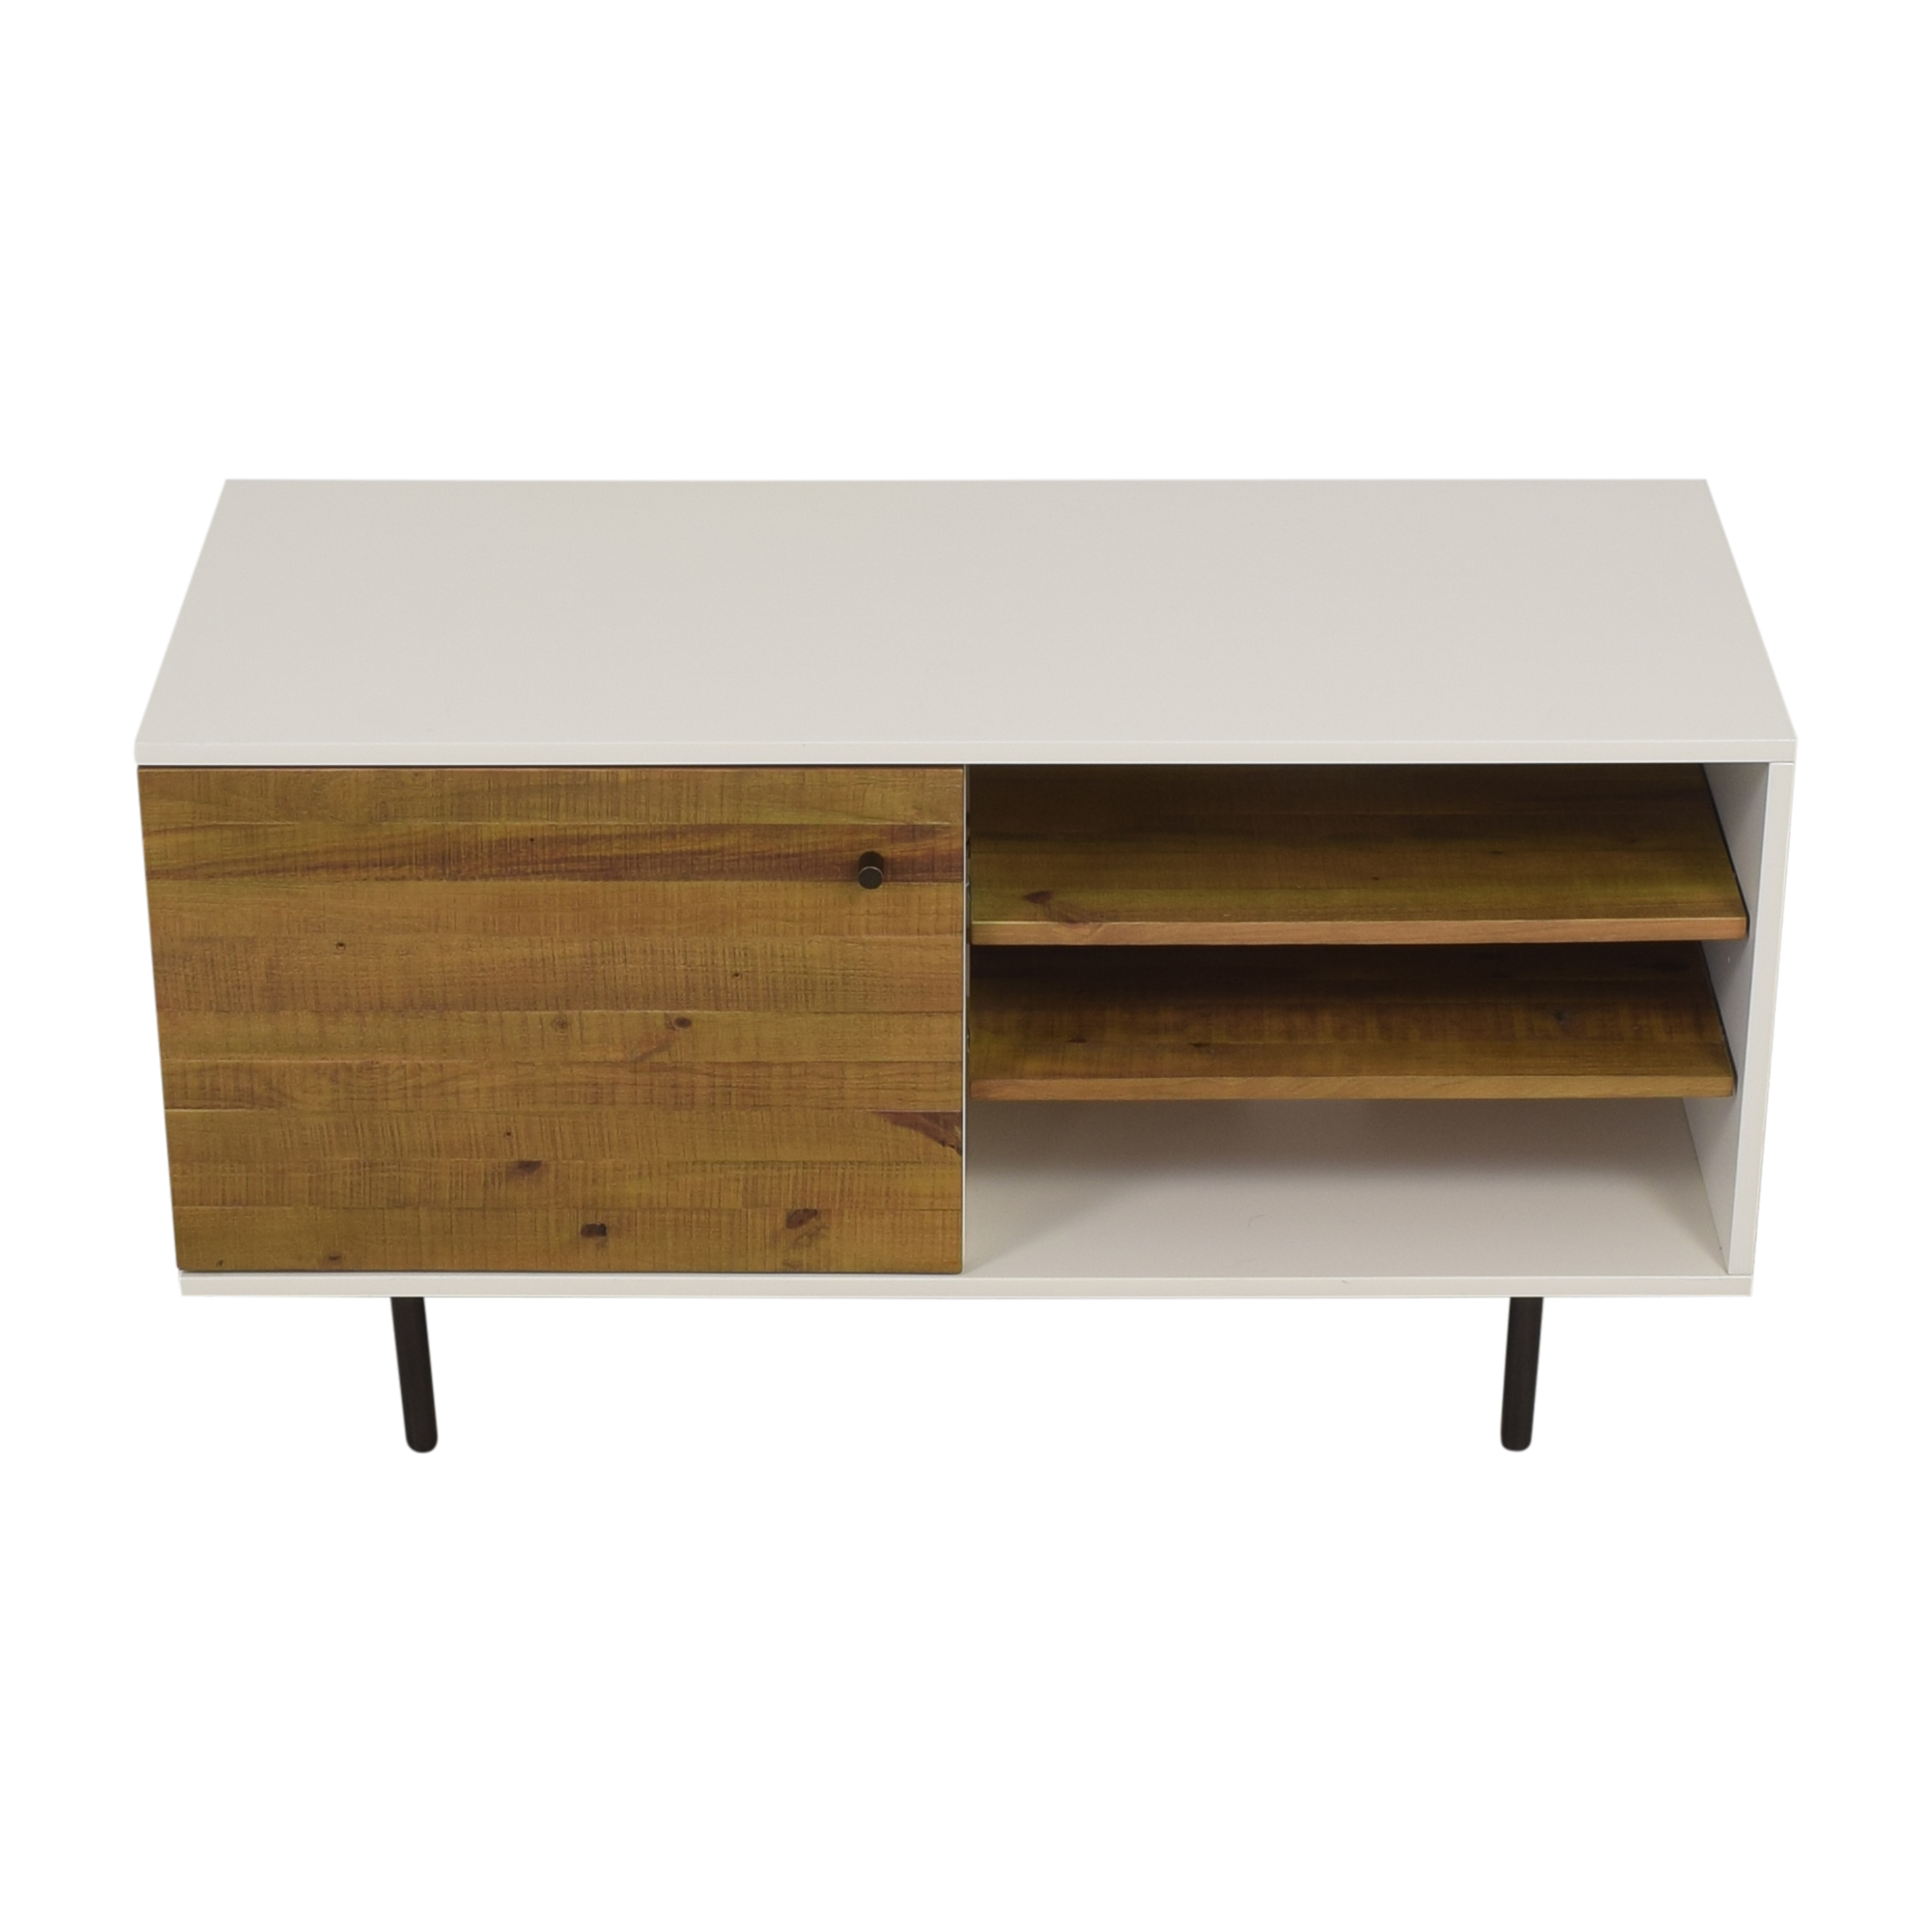 West Elm West Elm Reclaimed Media Console used